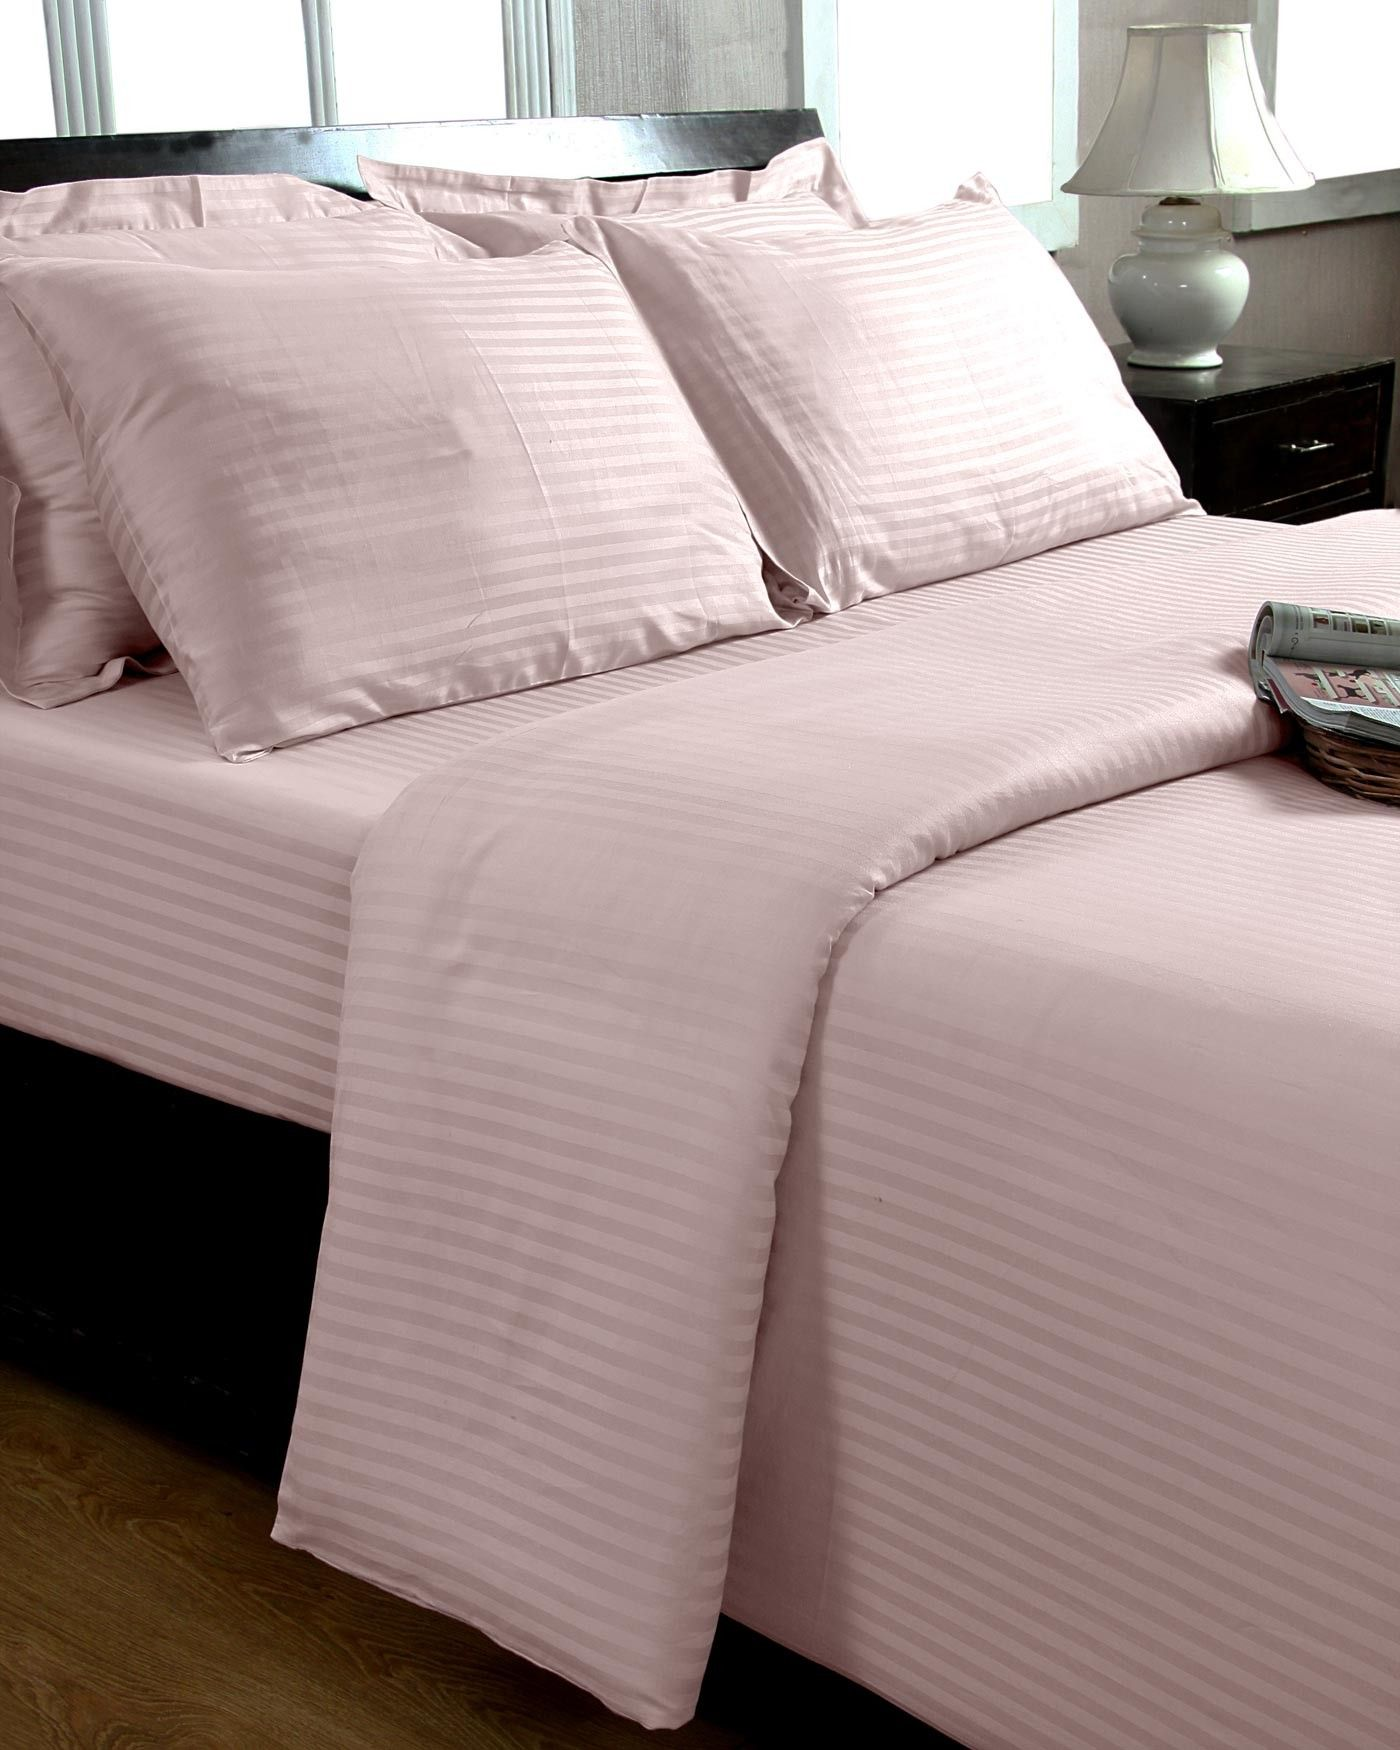 Pink Egyptian Cotton Satin Stripe Flat Sheet 330 TC, Super